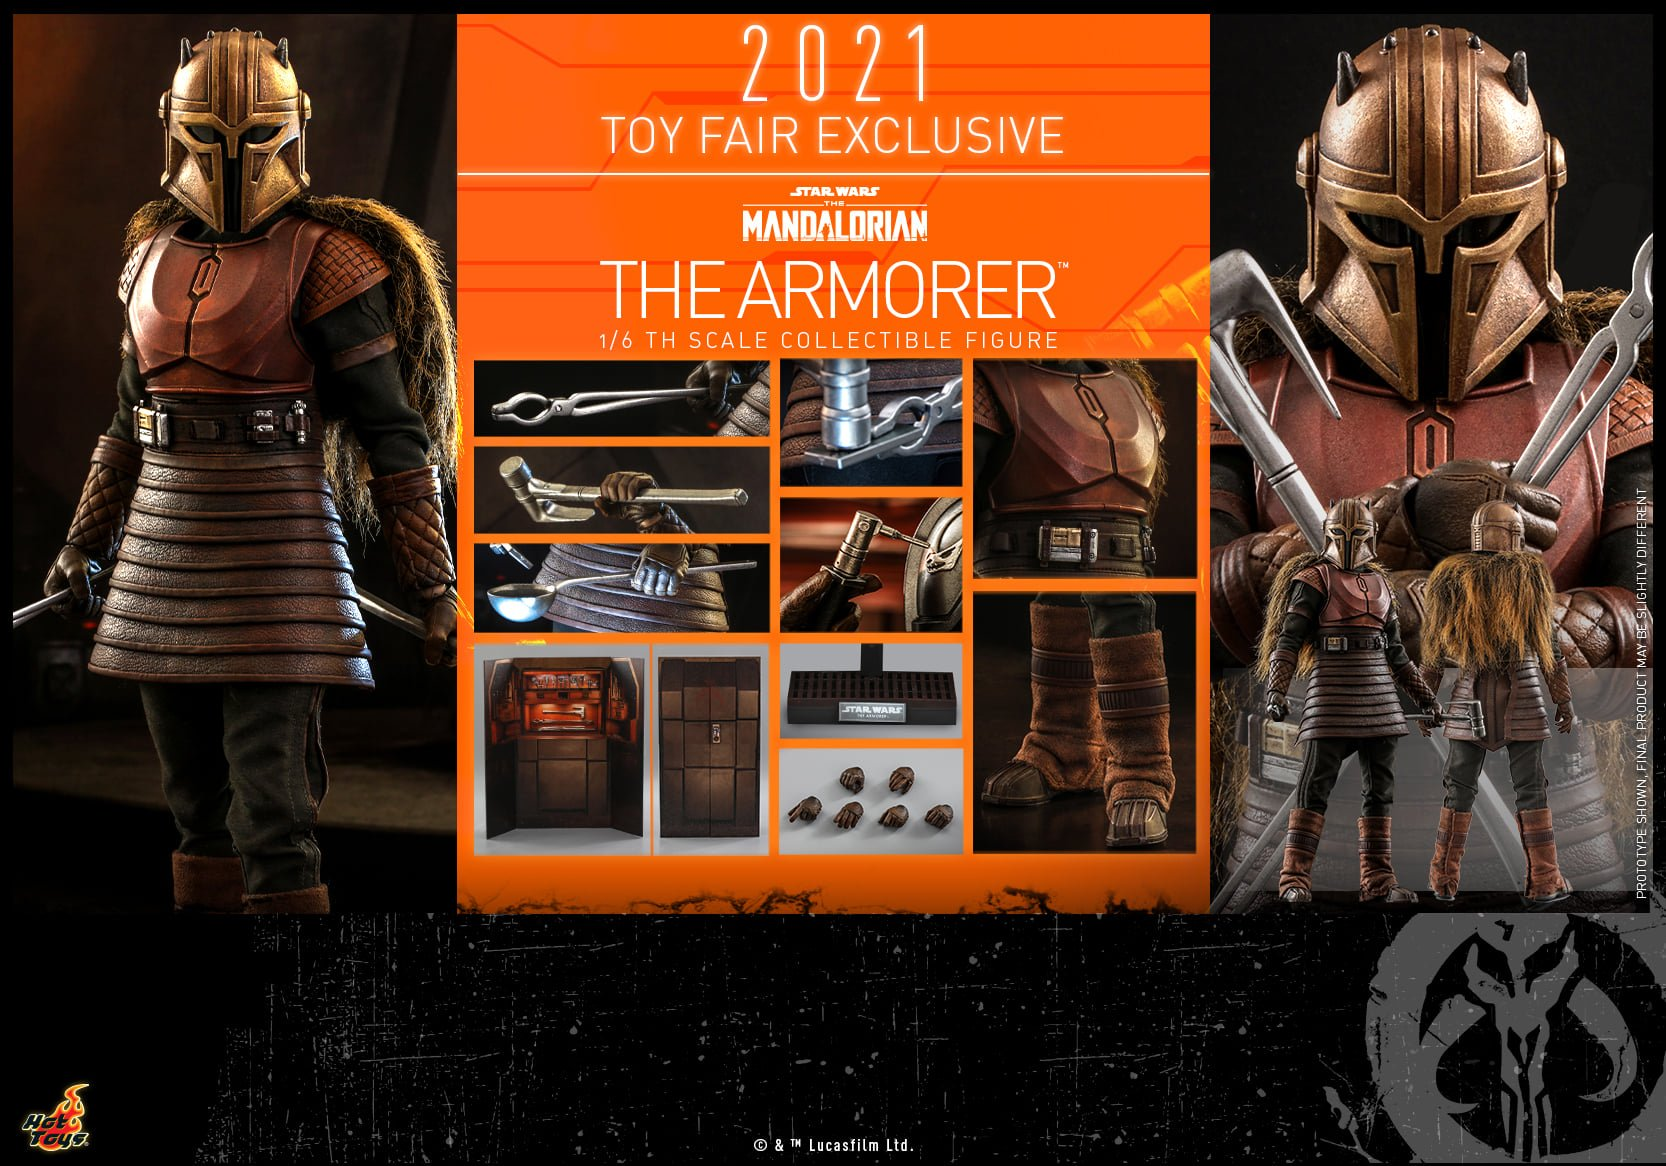 Hot Toys Star Wars The Mandalorian The Armorer Sixth Scale Figure